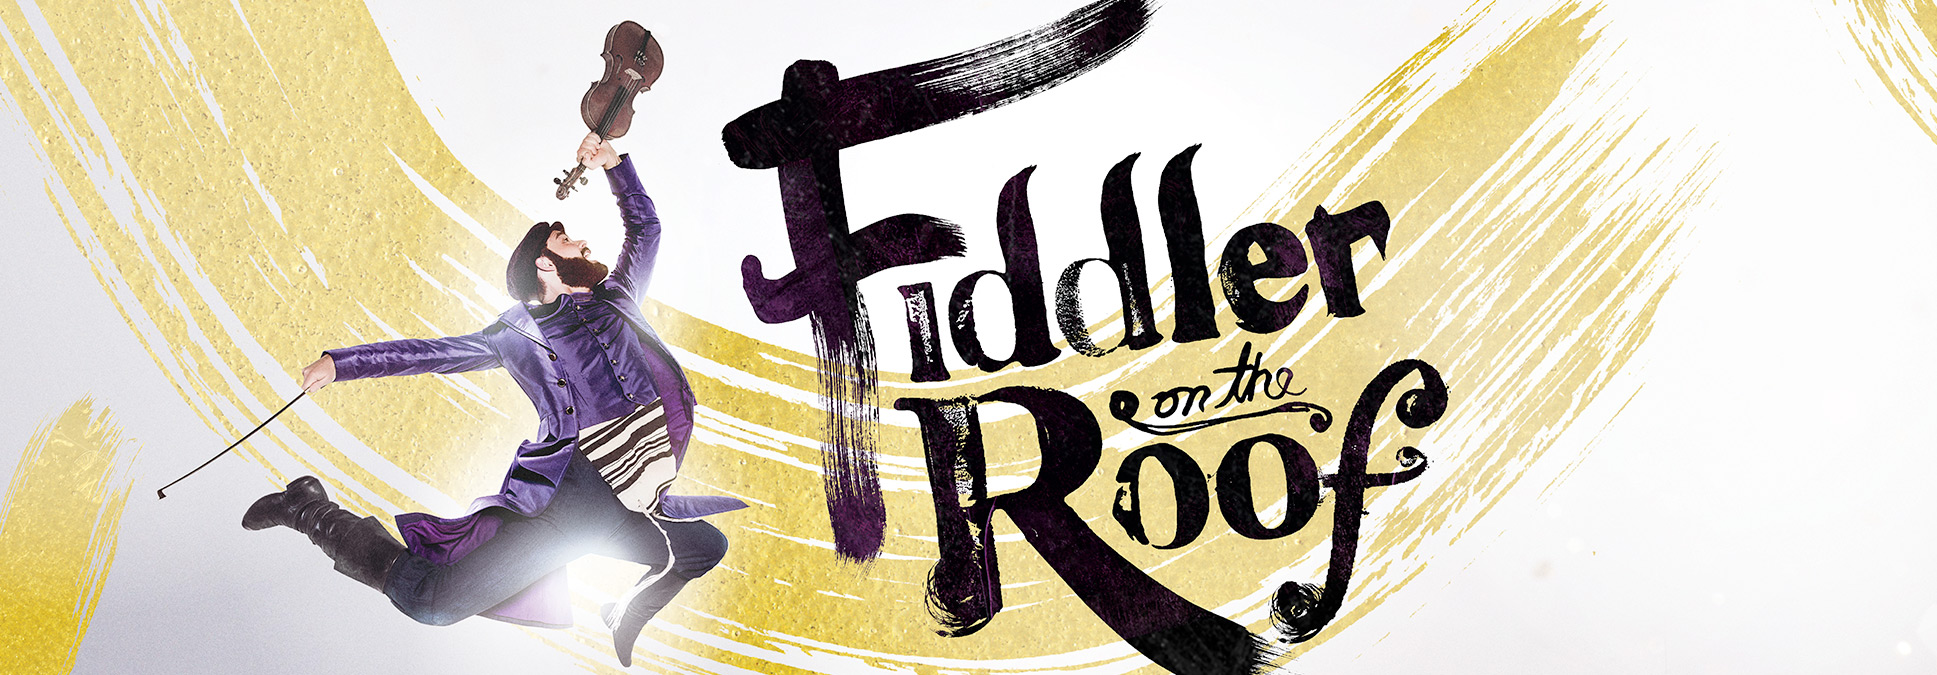 Fiddler on the Roof at the Marcus Center Broadway Milwaukee